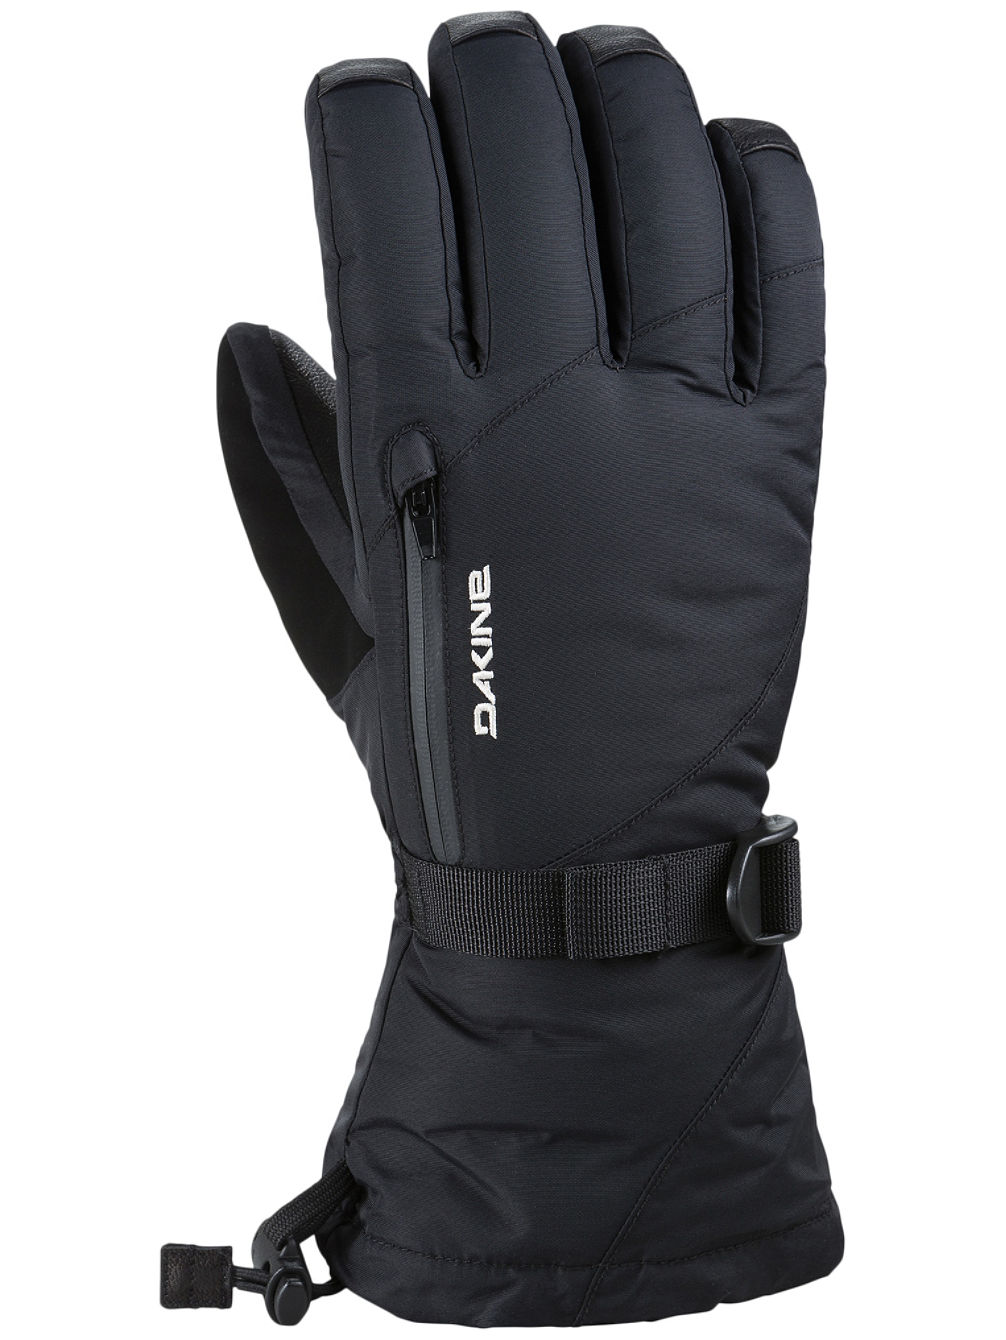 Leather Sequoia Gloves